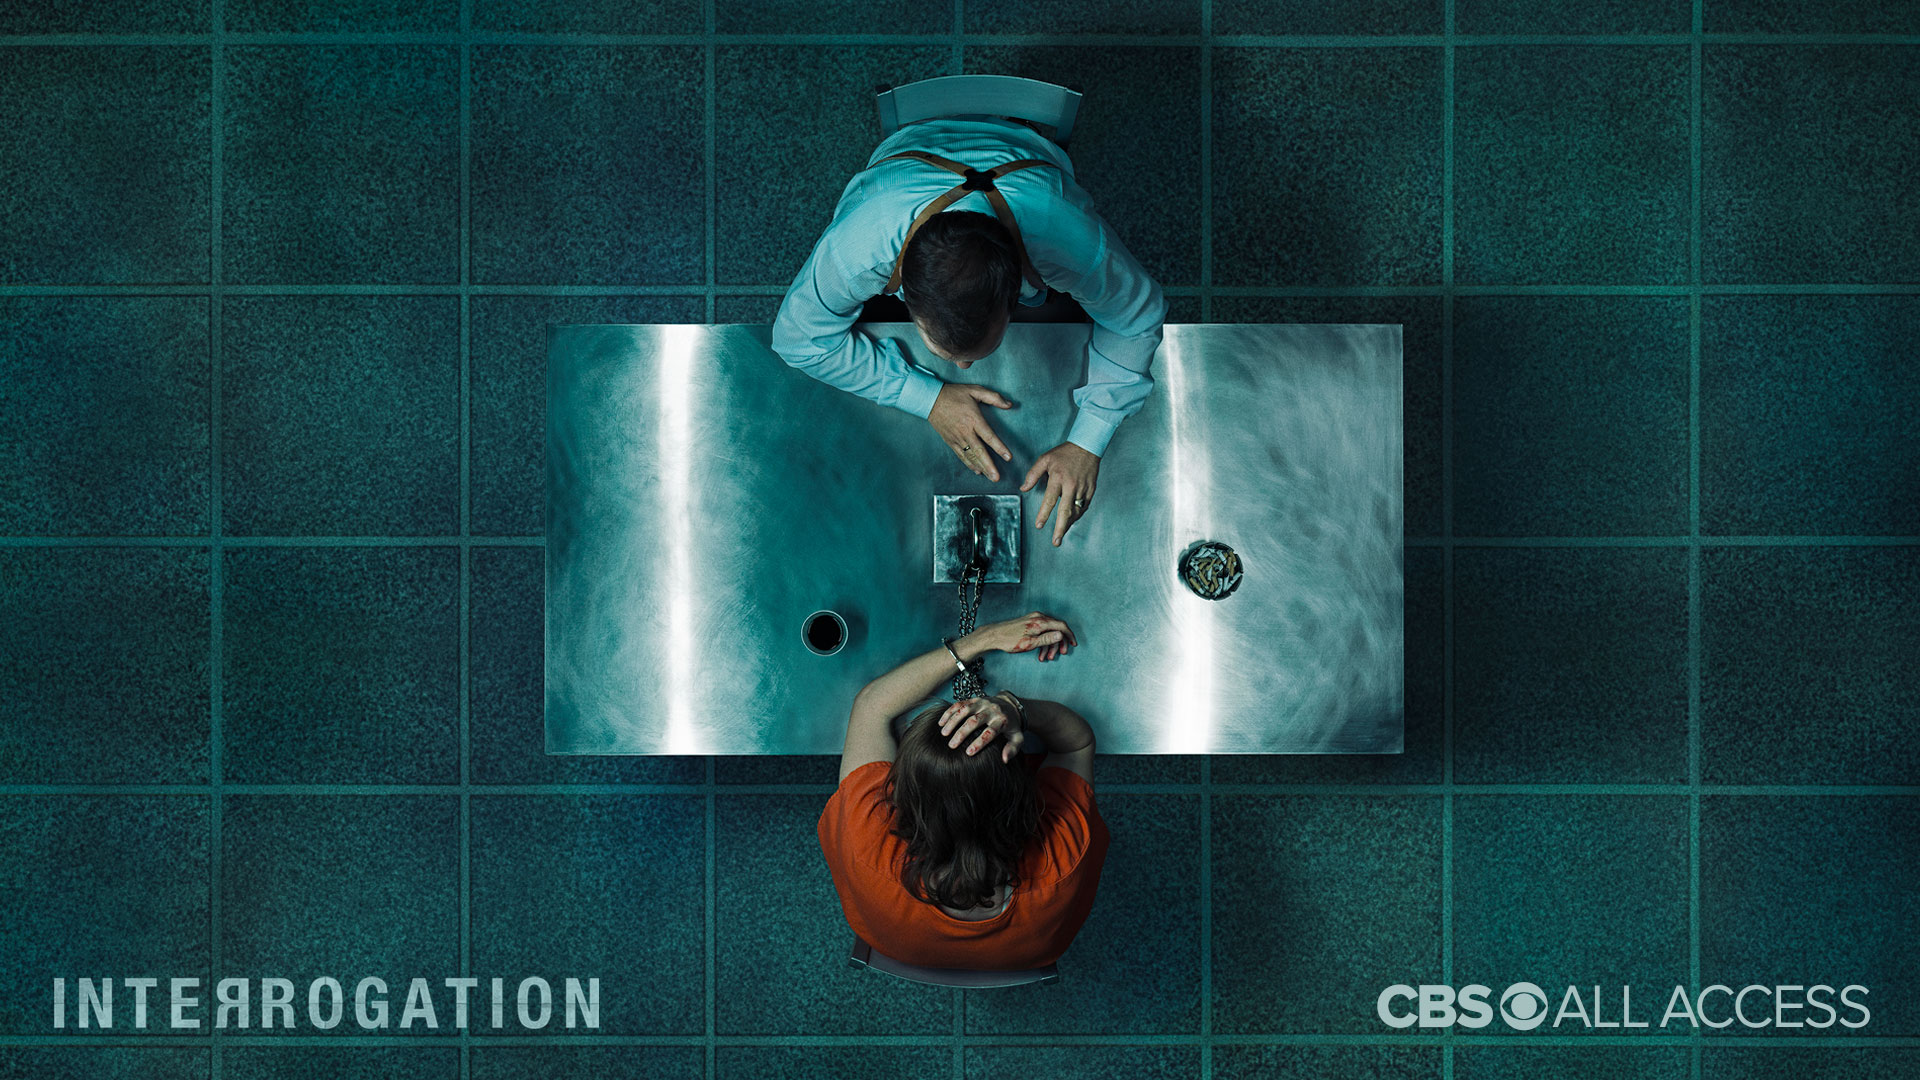 Stream Interrogation when all episodes are released on Thursday, Feb. 6 exclusively on CBS All Access.